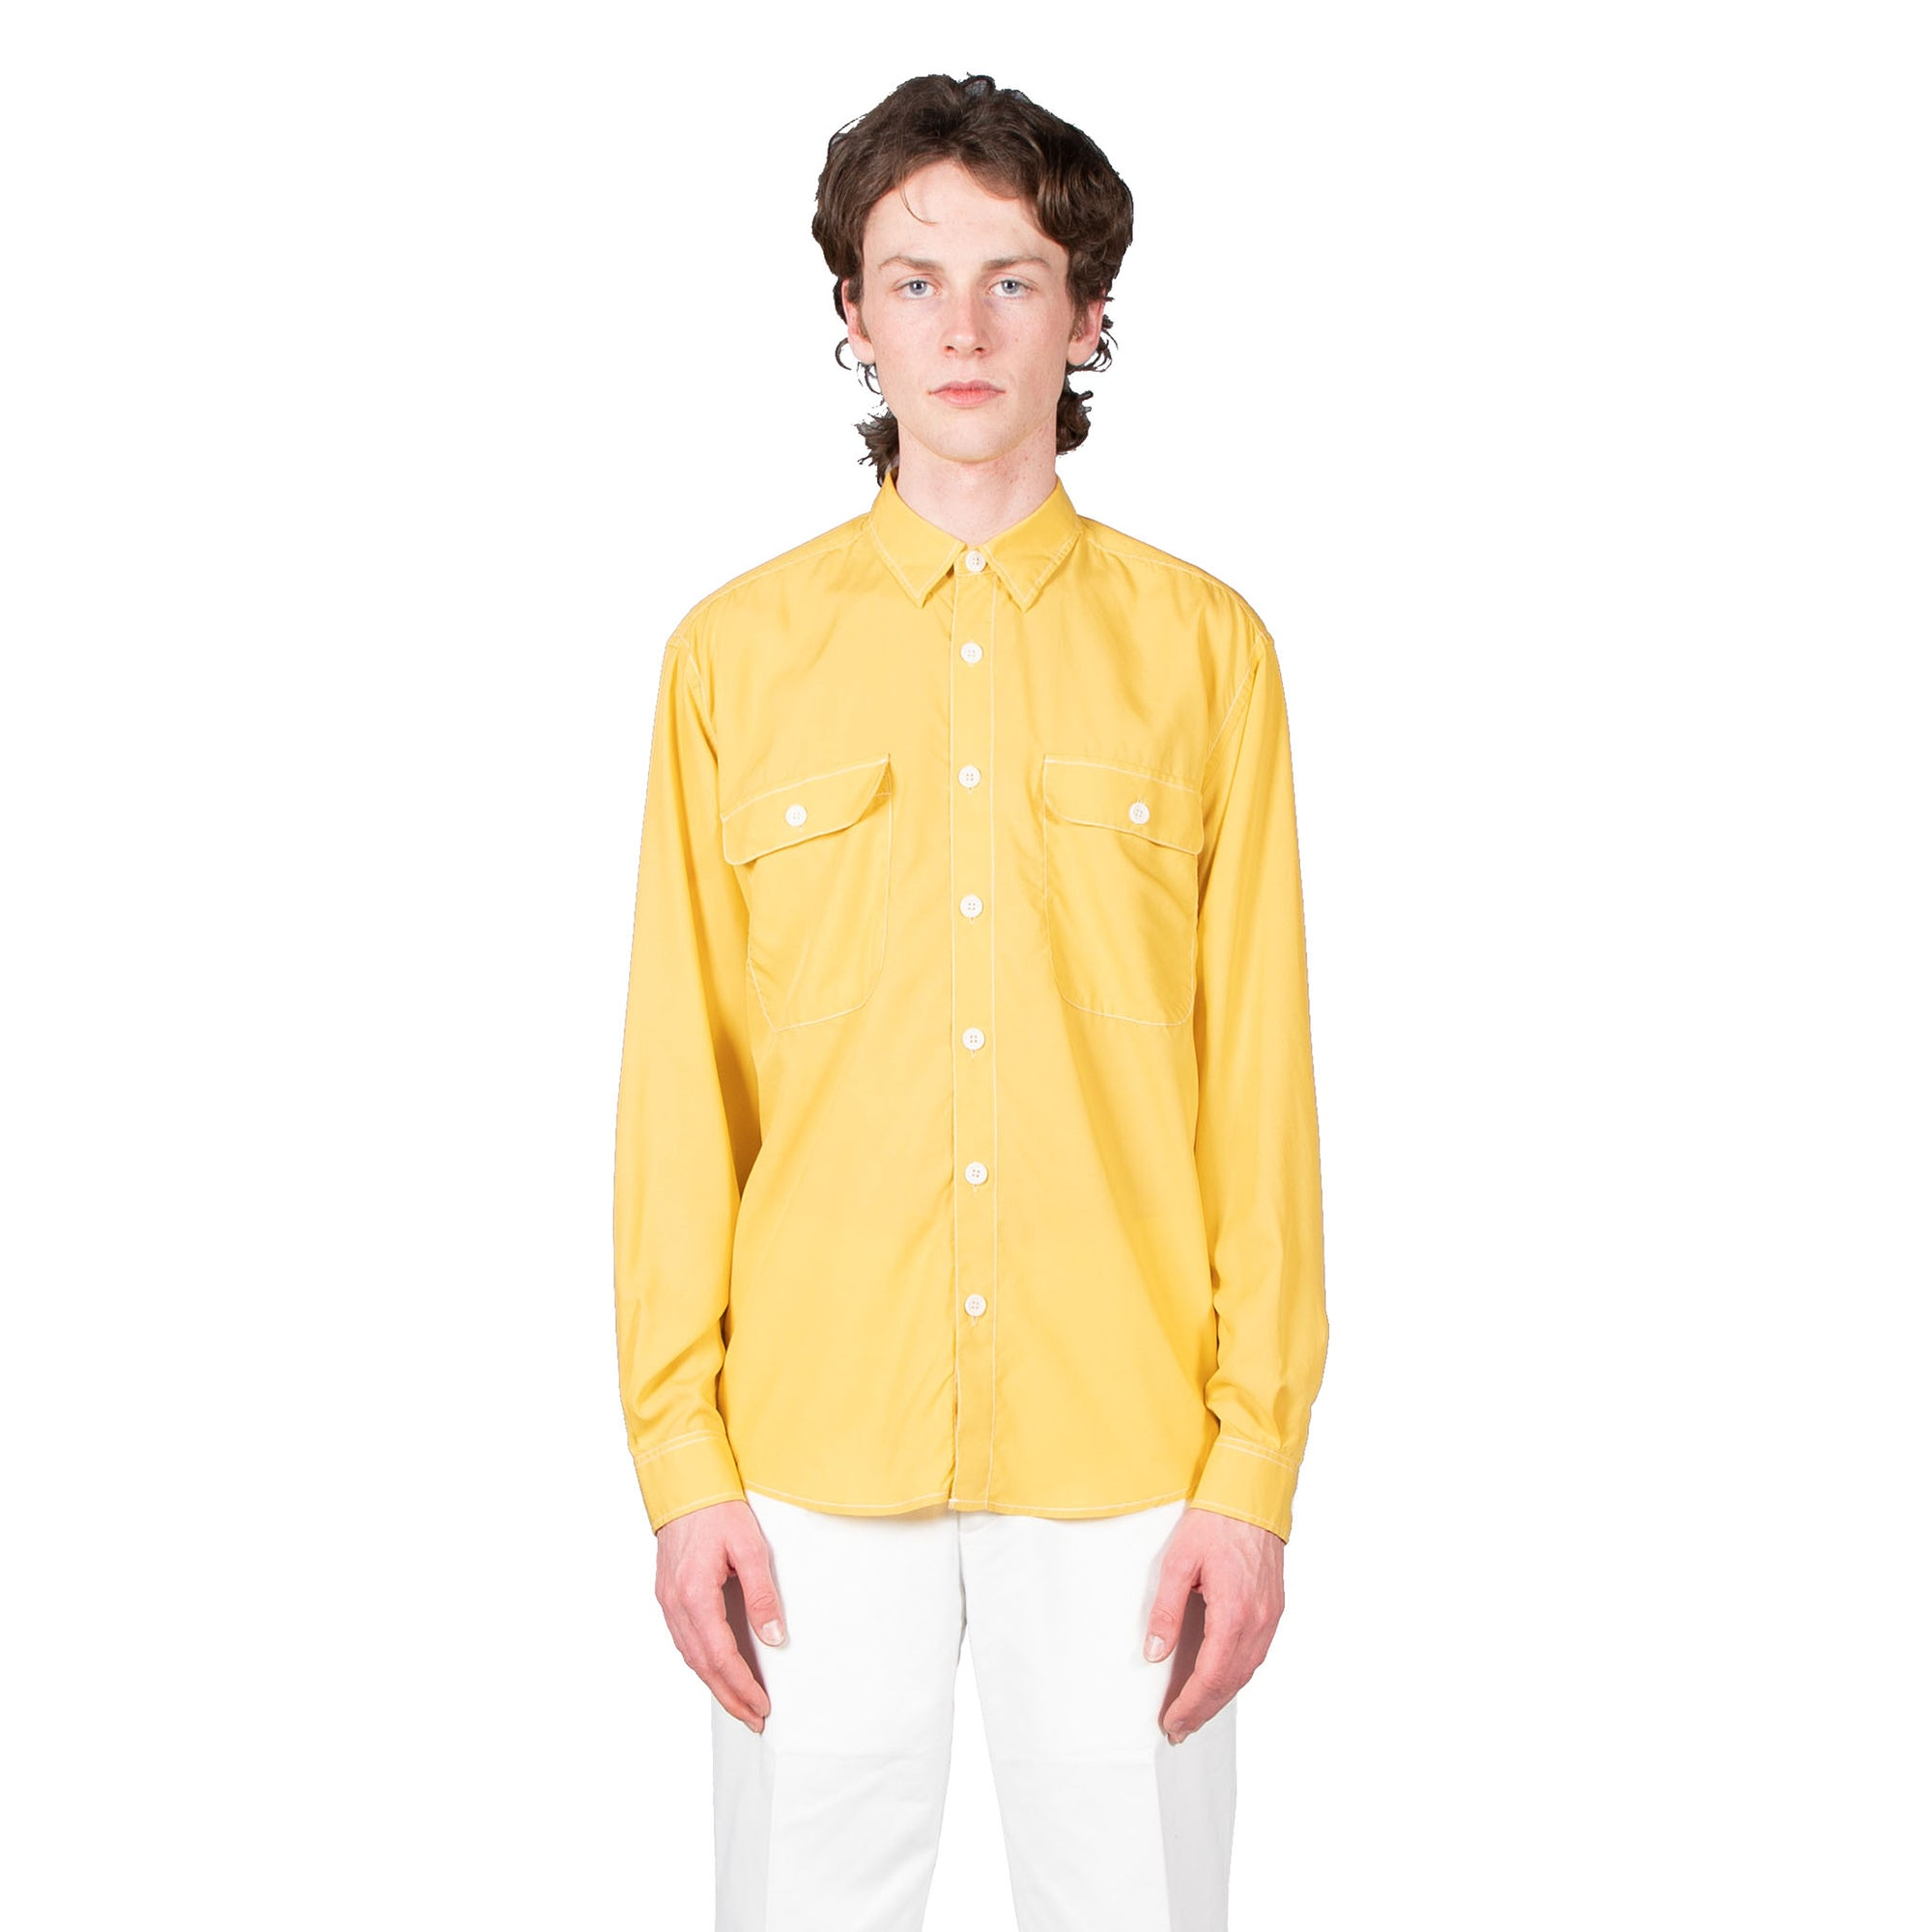 Shop Schnayderman's shirt online boxy tencel yellow